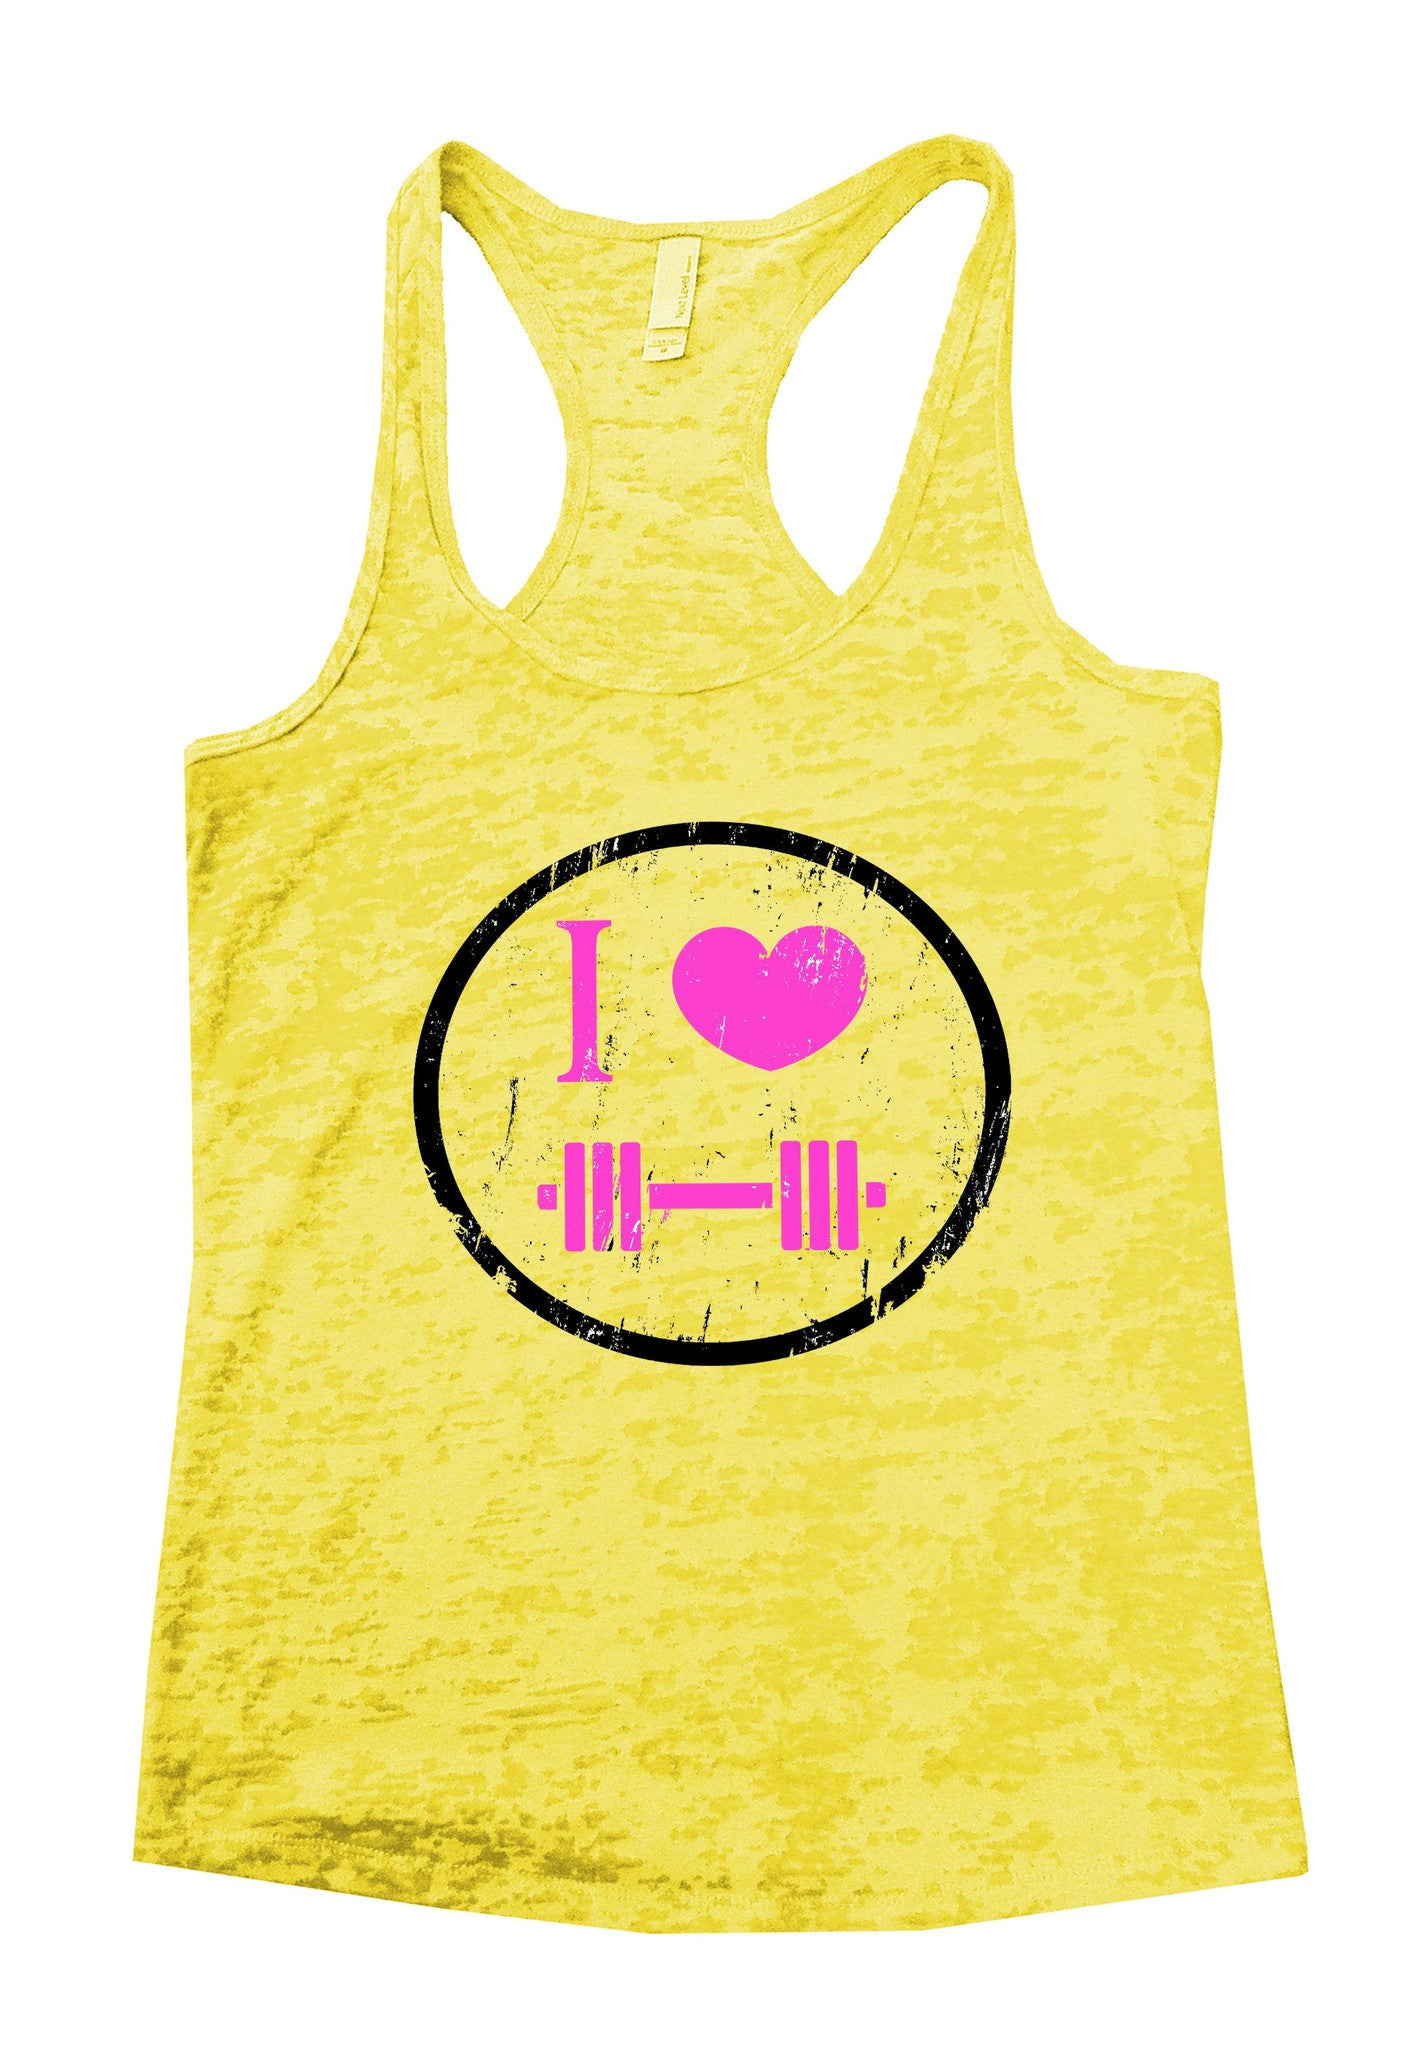 I Love Weightlifting Burnout Tank Top By BurnoutTankTops.com - 726 - Funny Shirts Tank Tops Burnouts and Triblends  - 6